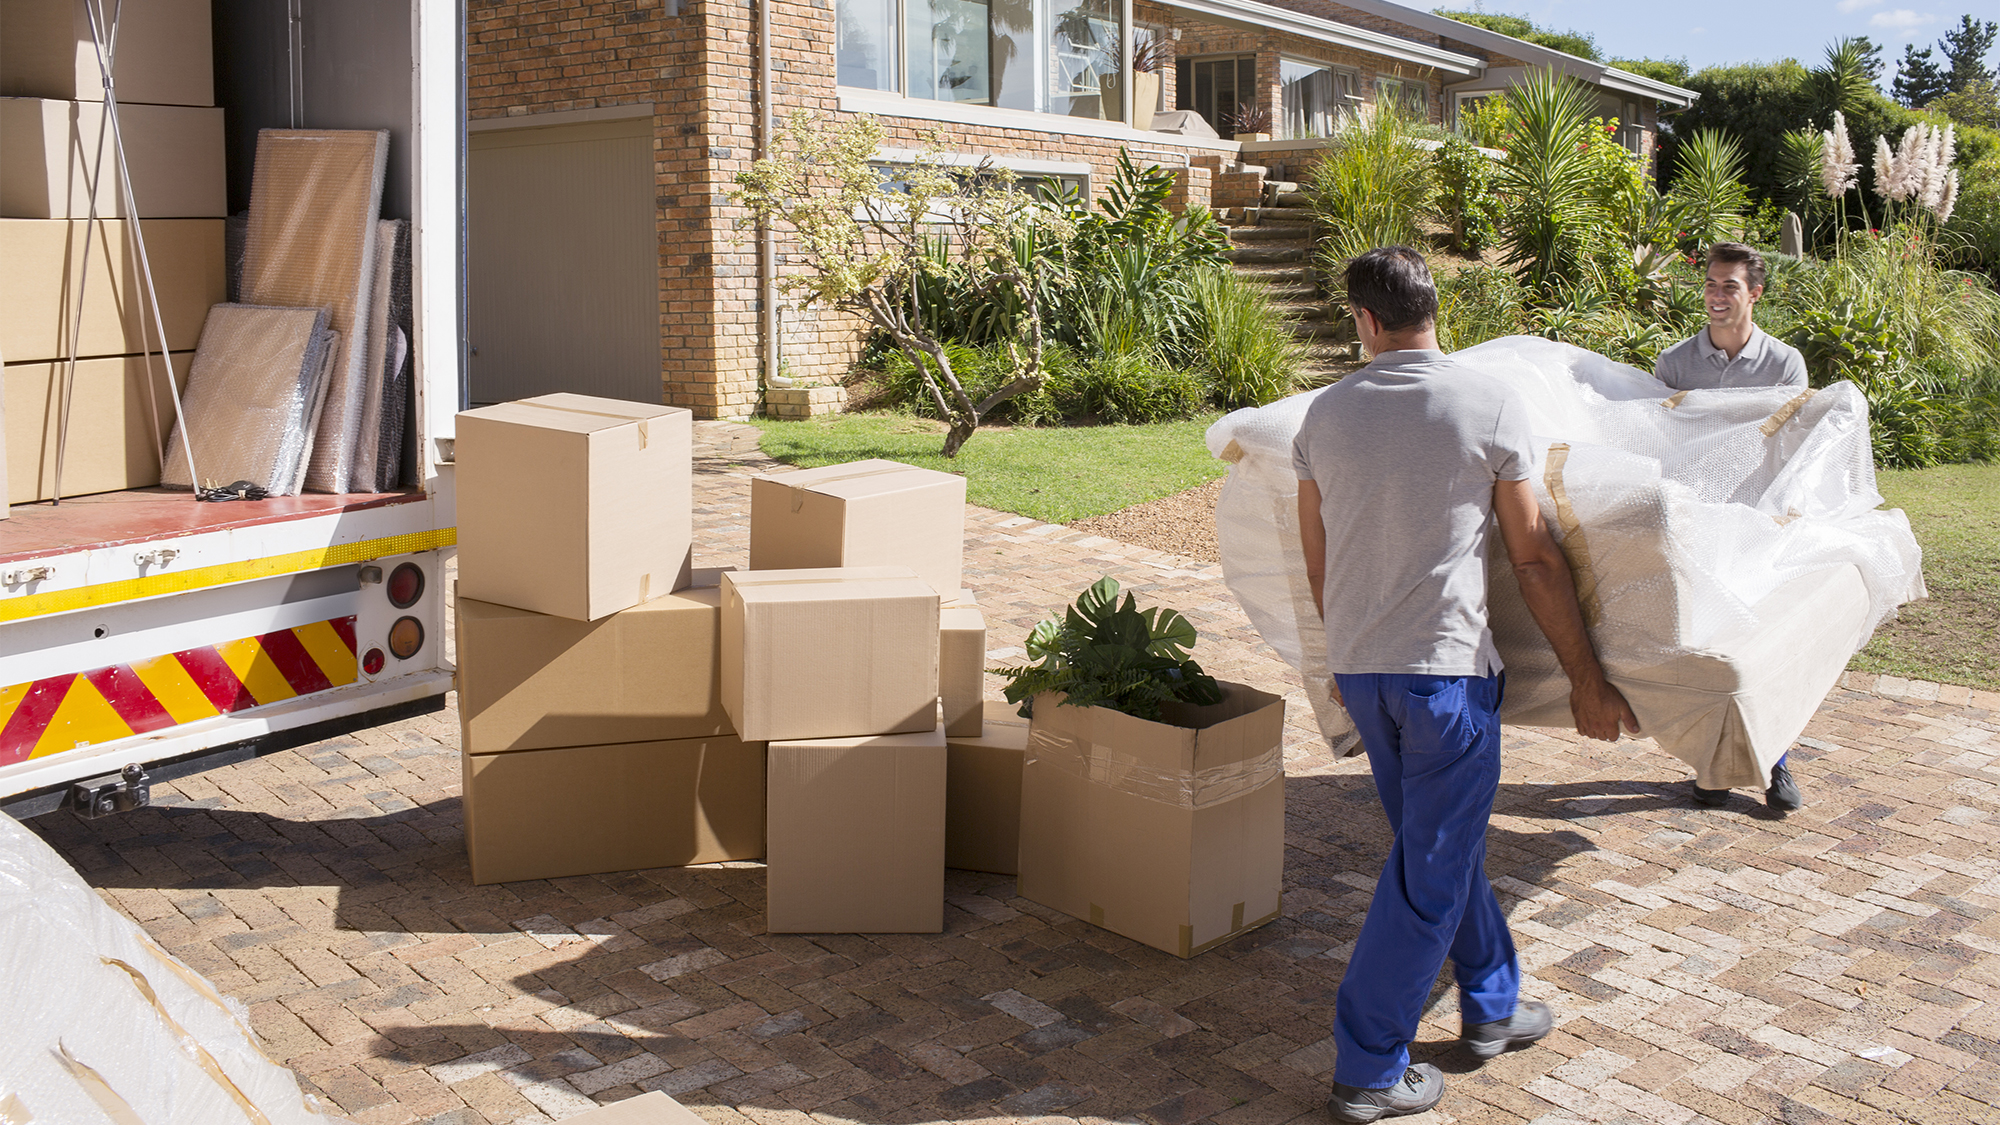 A Guide to Moving Day Etiquette. How to Hire Moving Day Help   Moving com